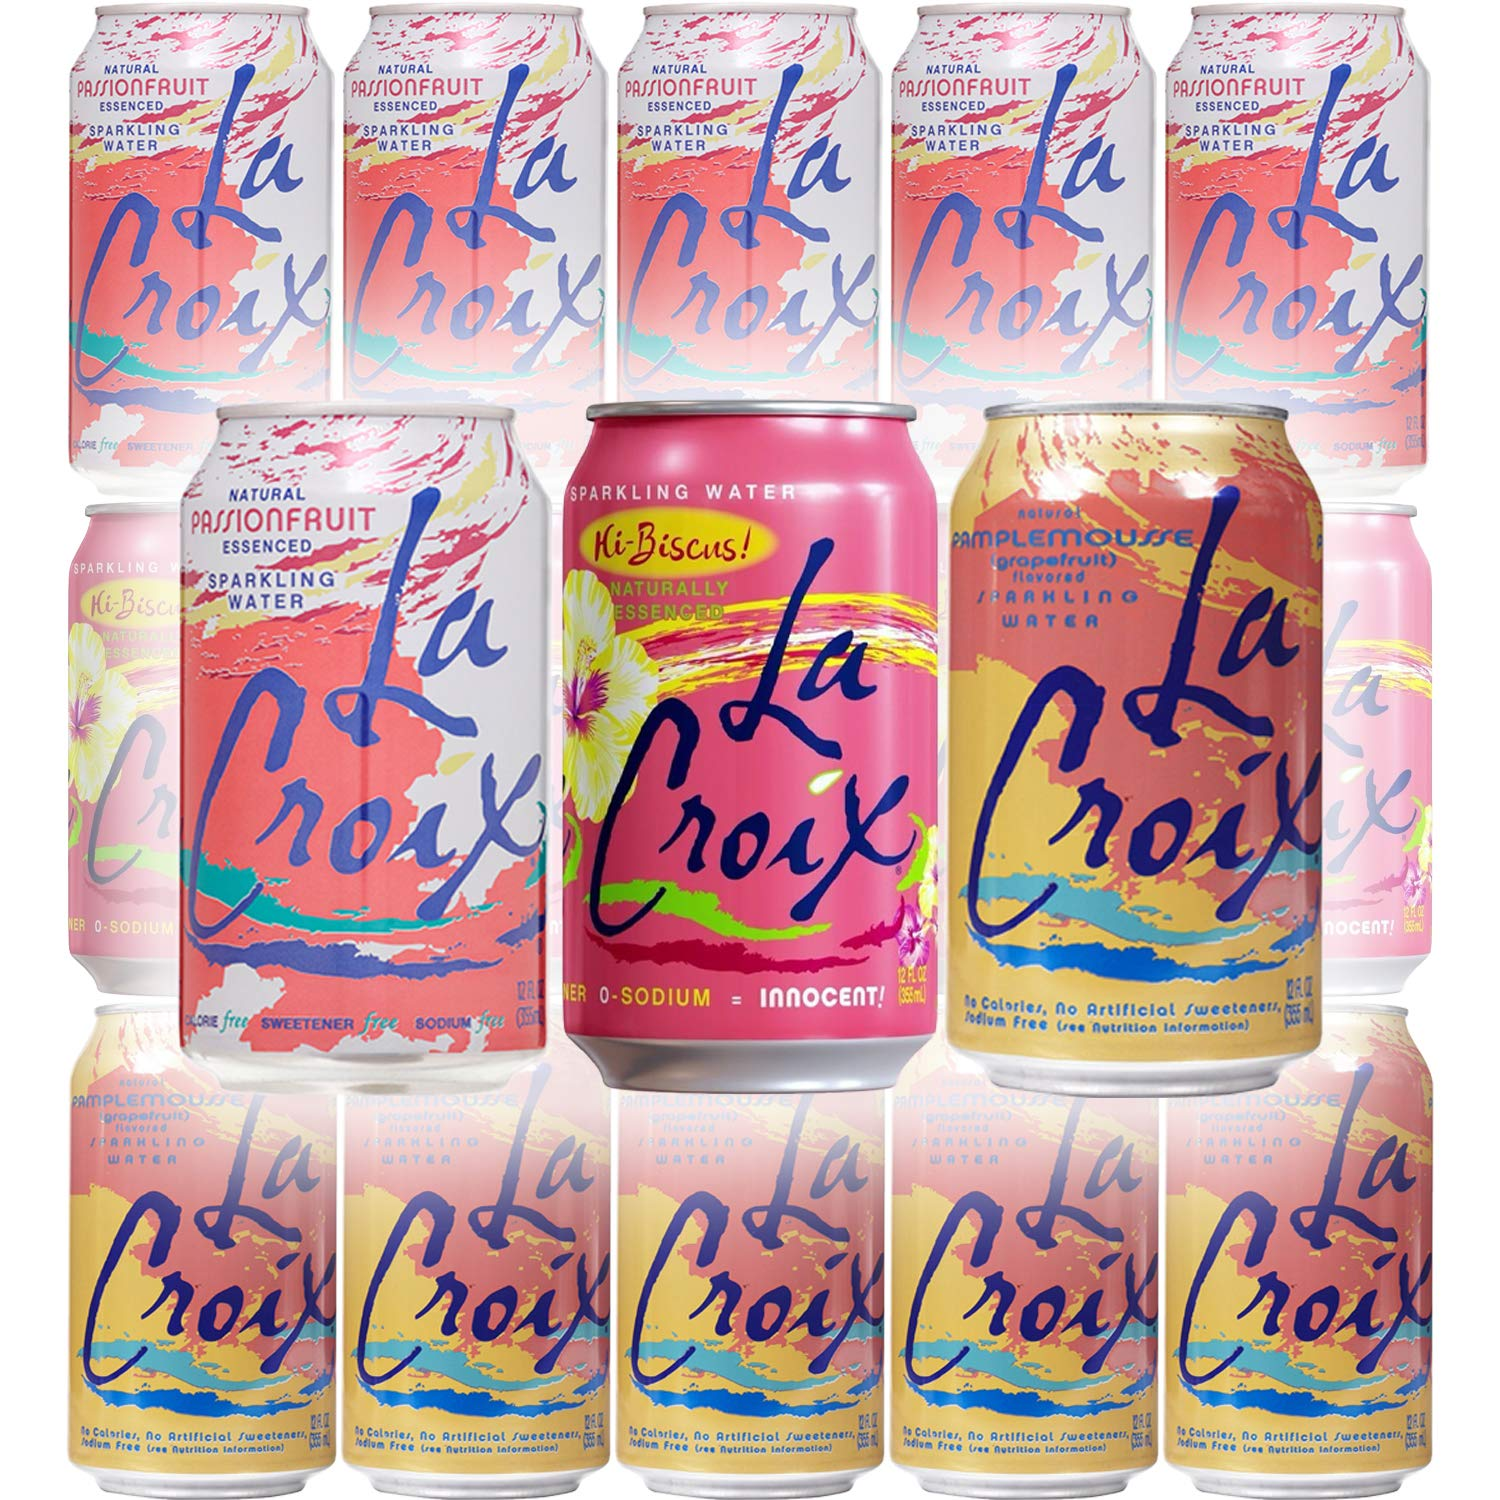 La Croix Grapefruit, Hibiscus, Passionfruit Naturally Essenced Flavored Sparkling Water - Variety Pack, 12 oz Can (Pack of 15, Total of 180 Oz) by La Croix